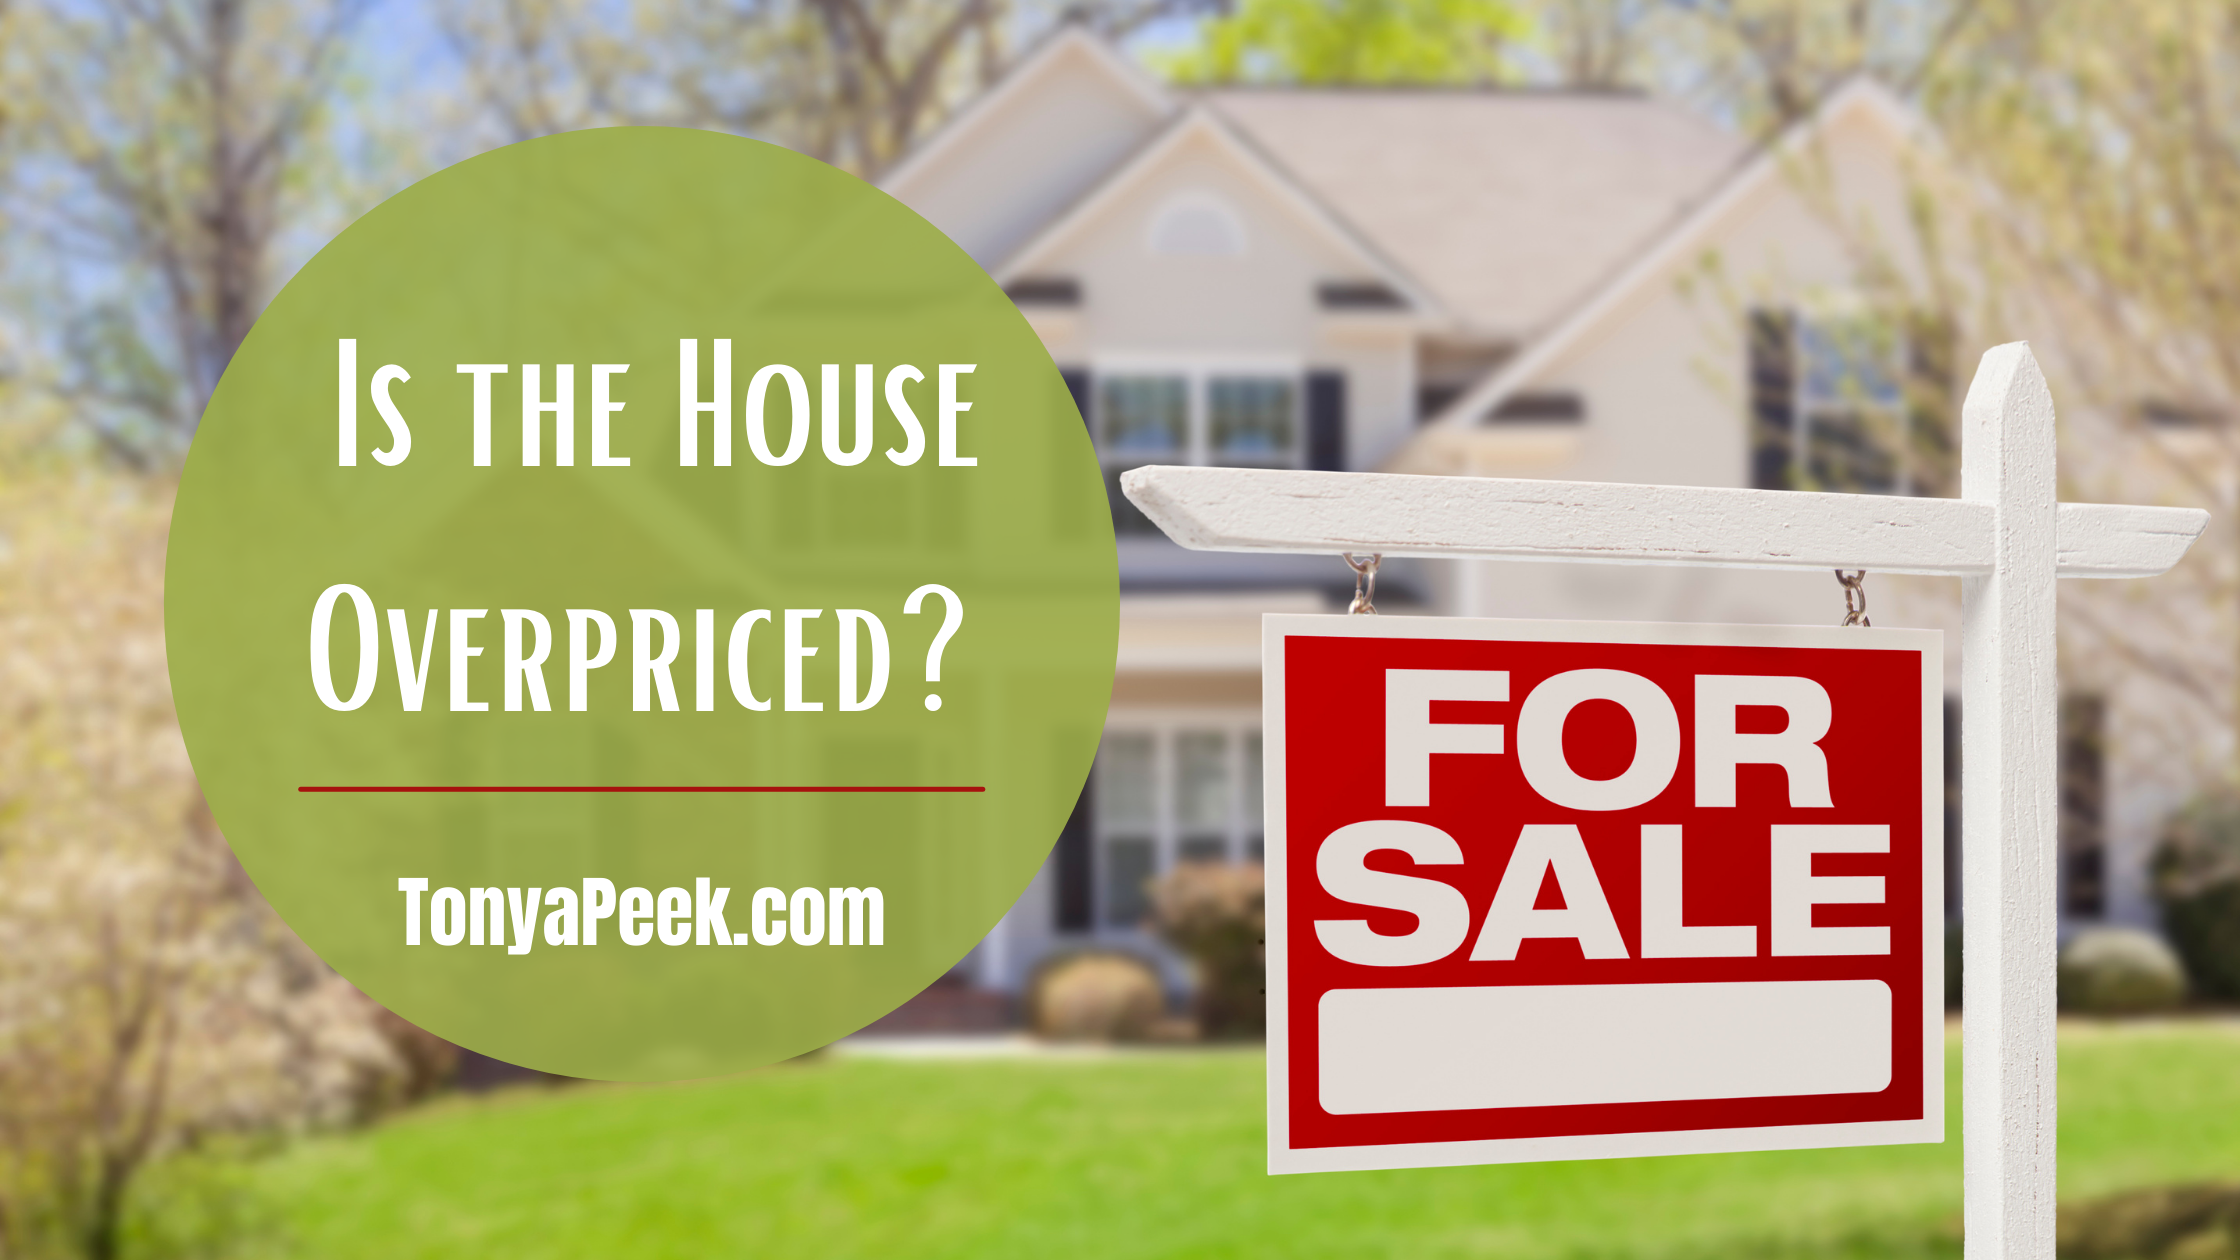 Is the Home Overpriced? Here's How to Tell